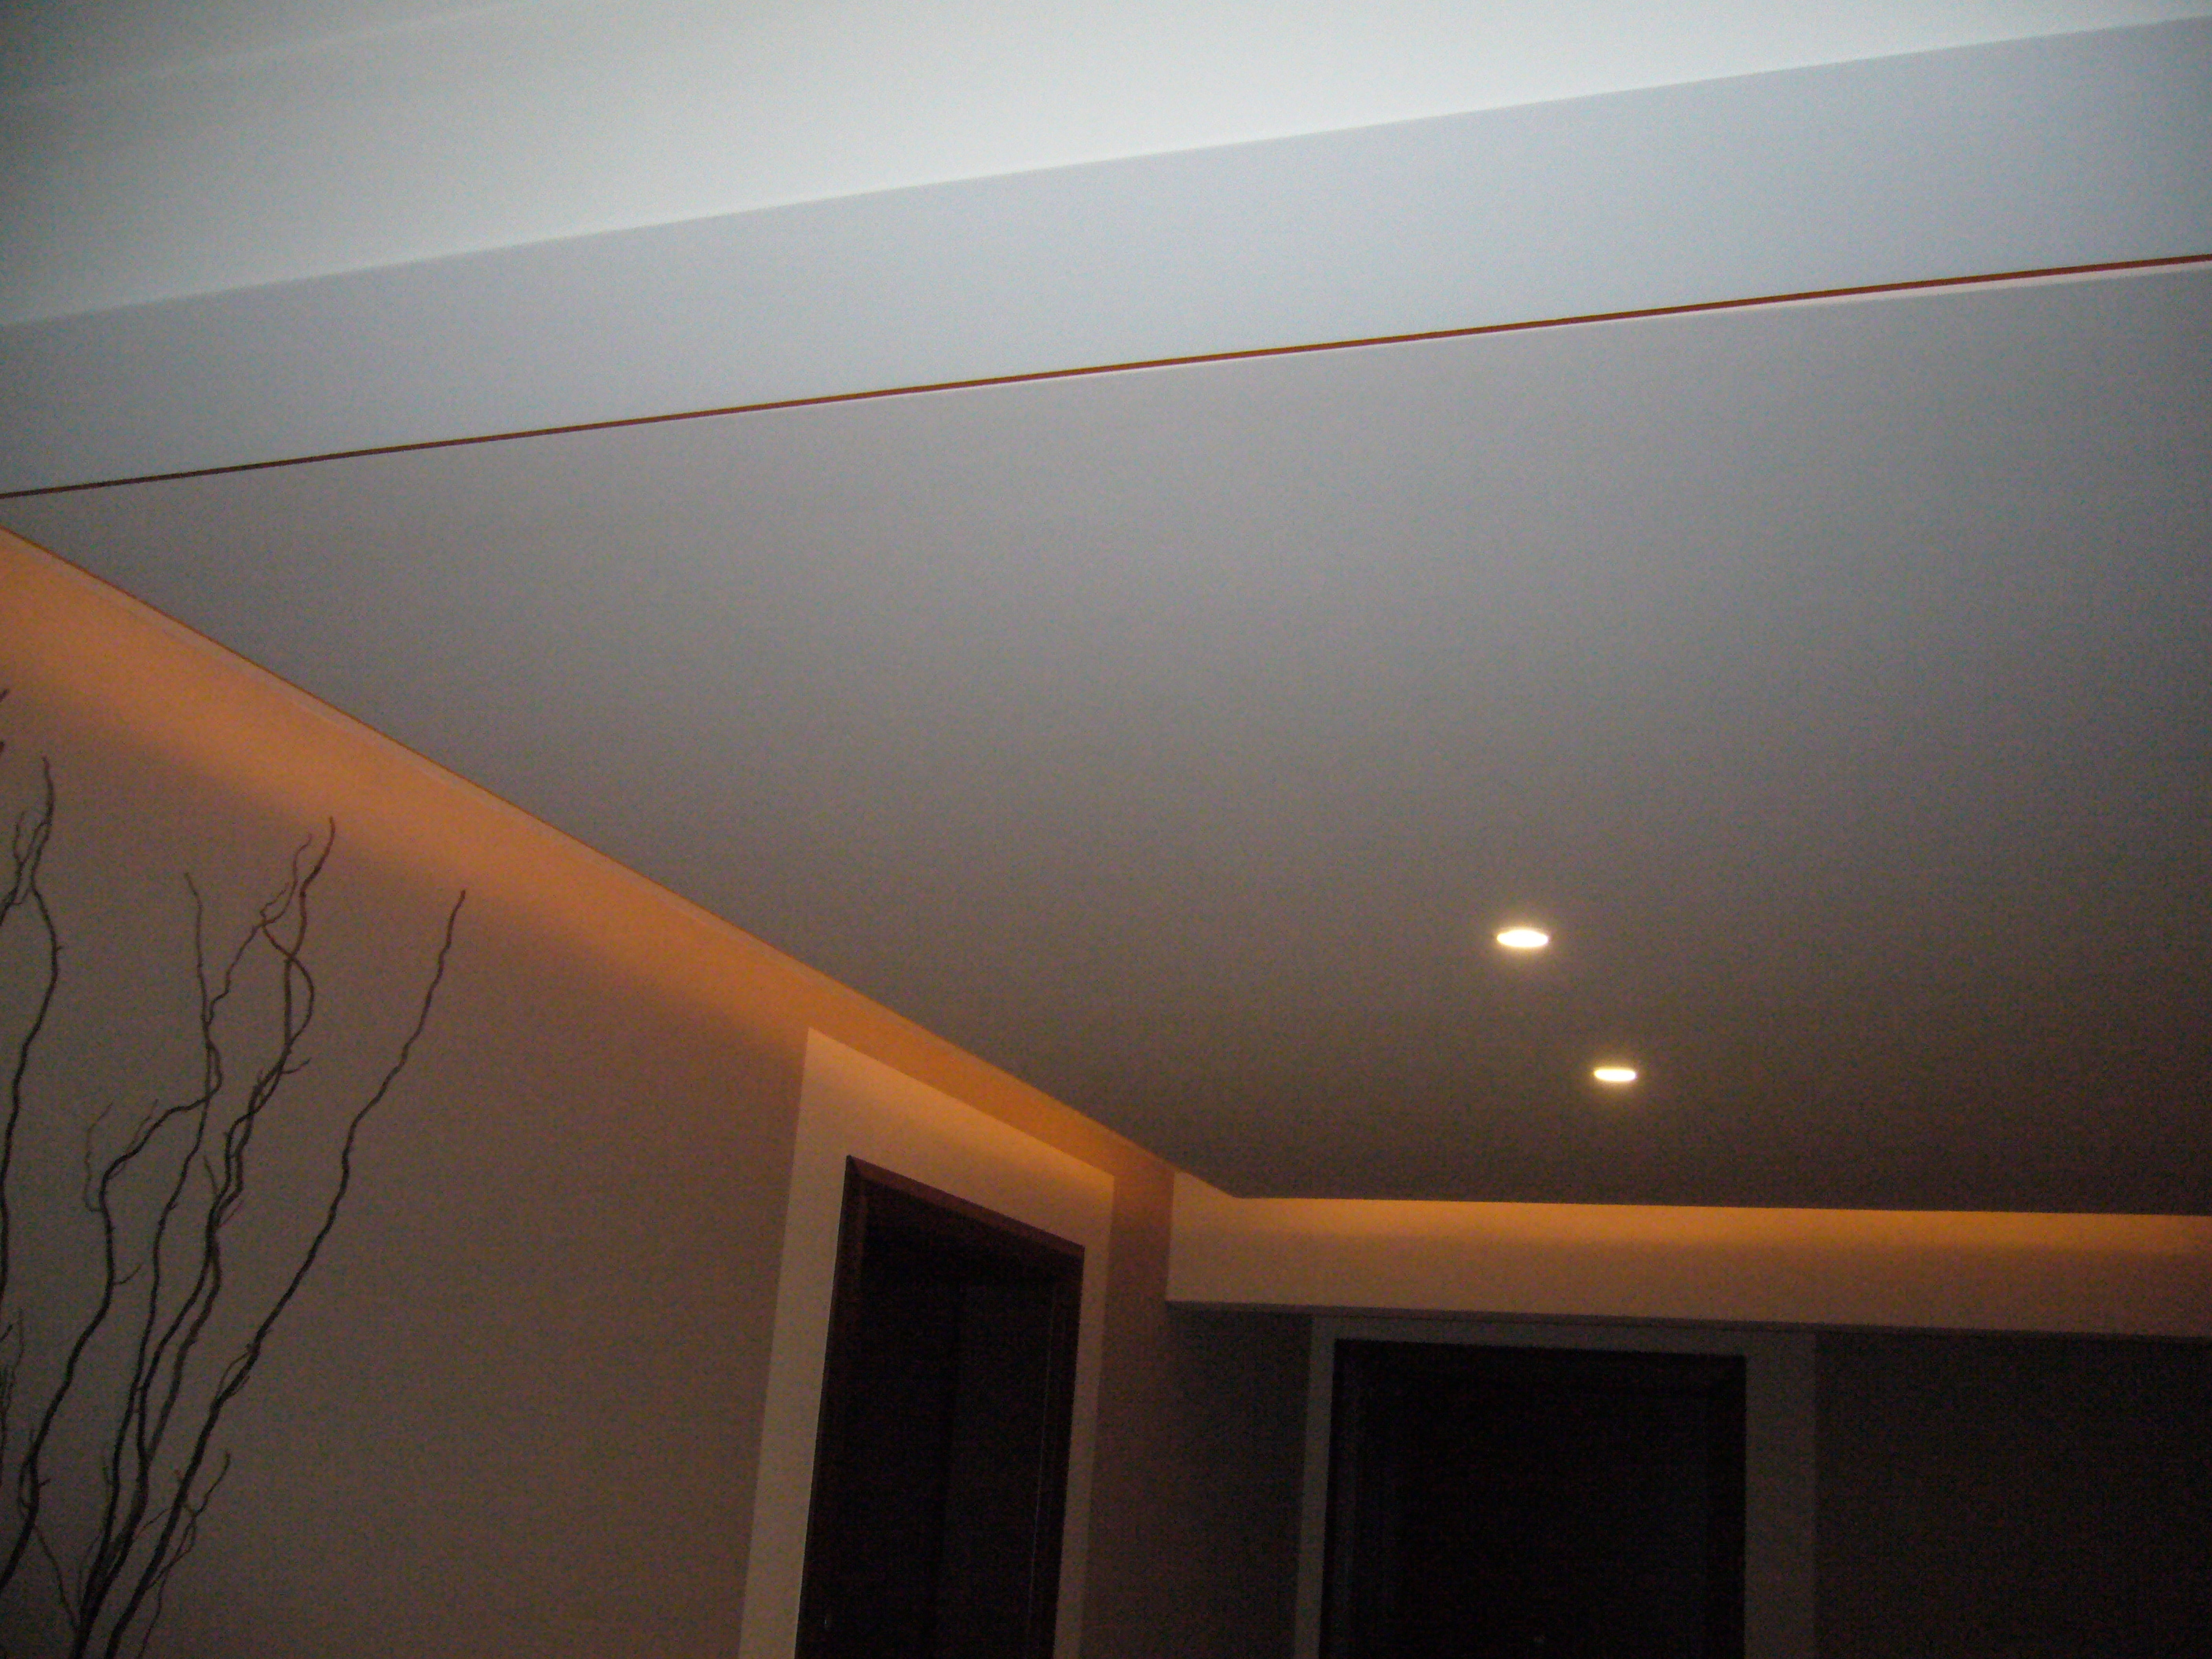 6 peupliers boulogne billancourt exemple de traitement for Faux plafond renovation